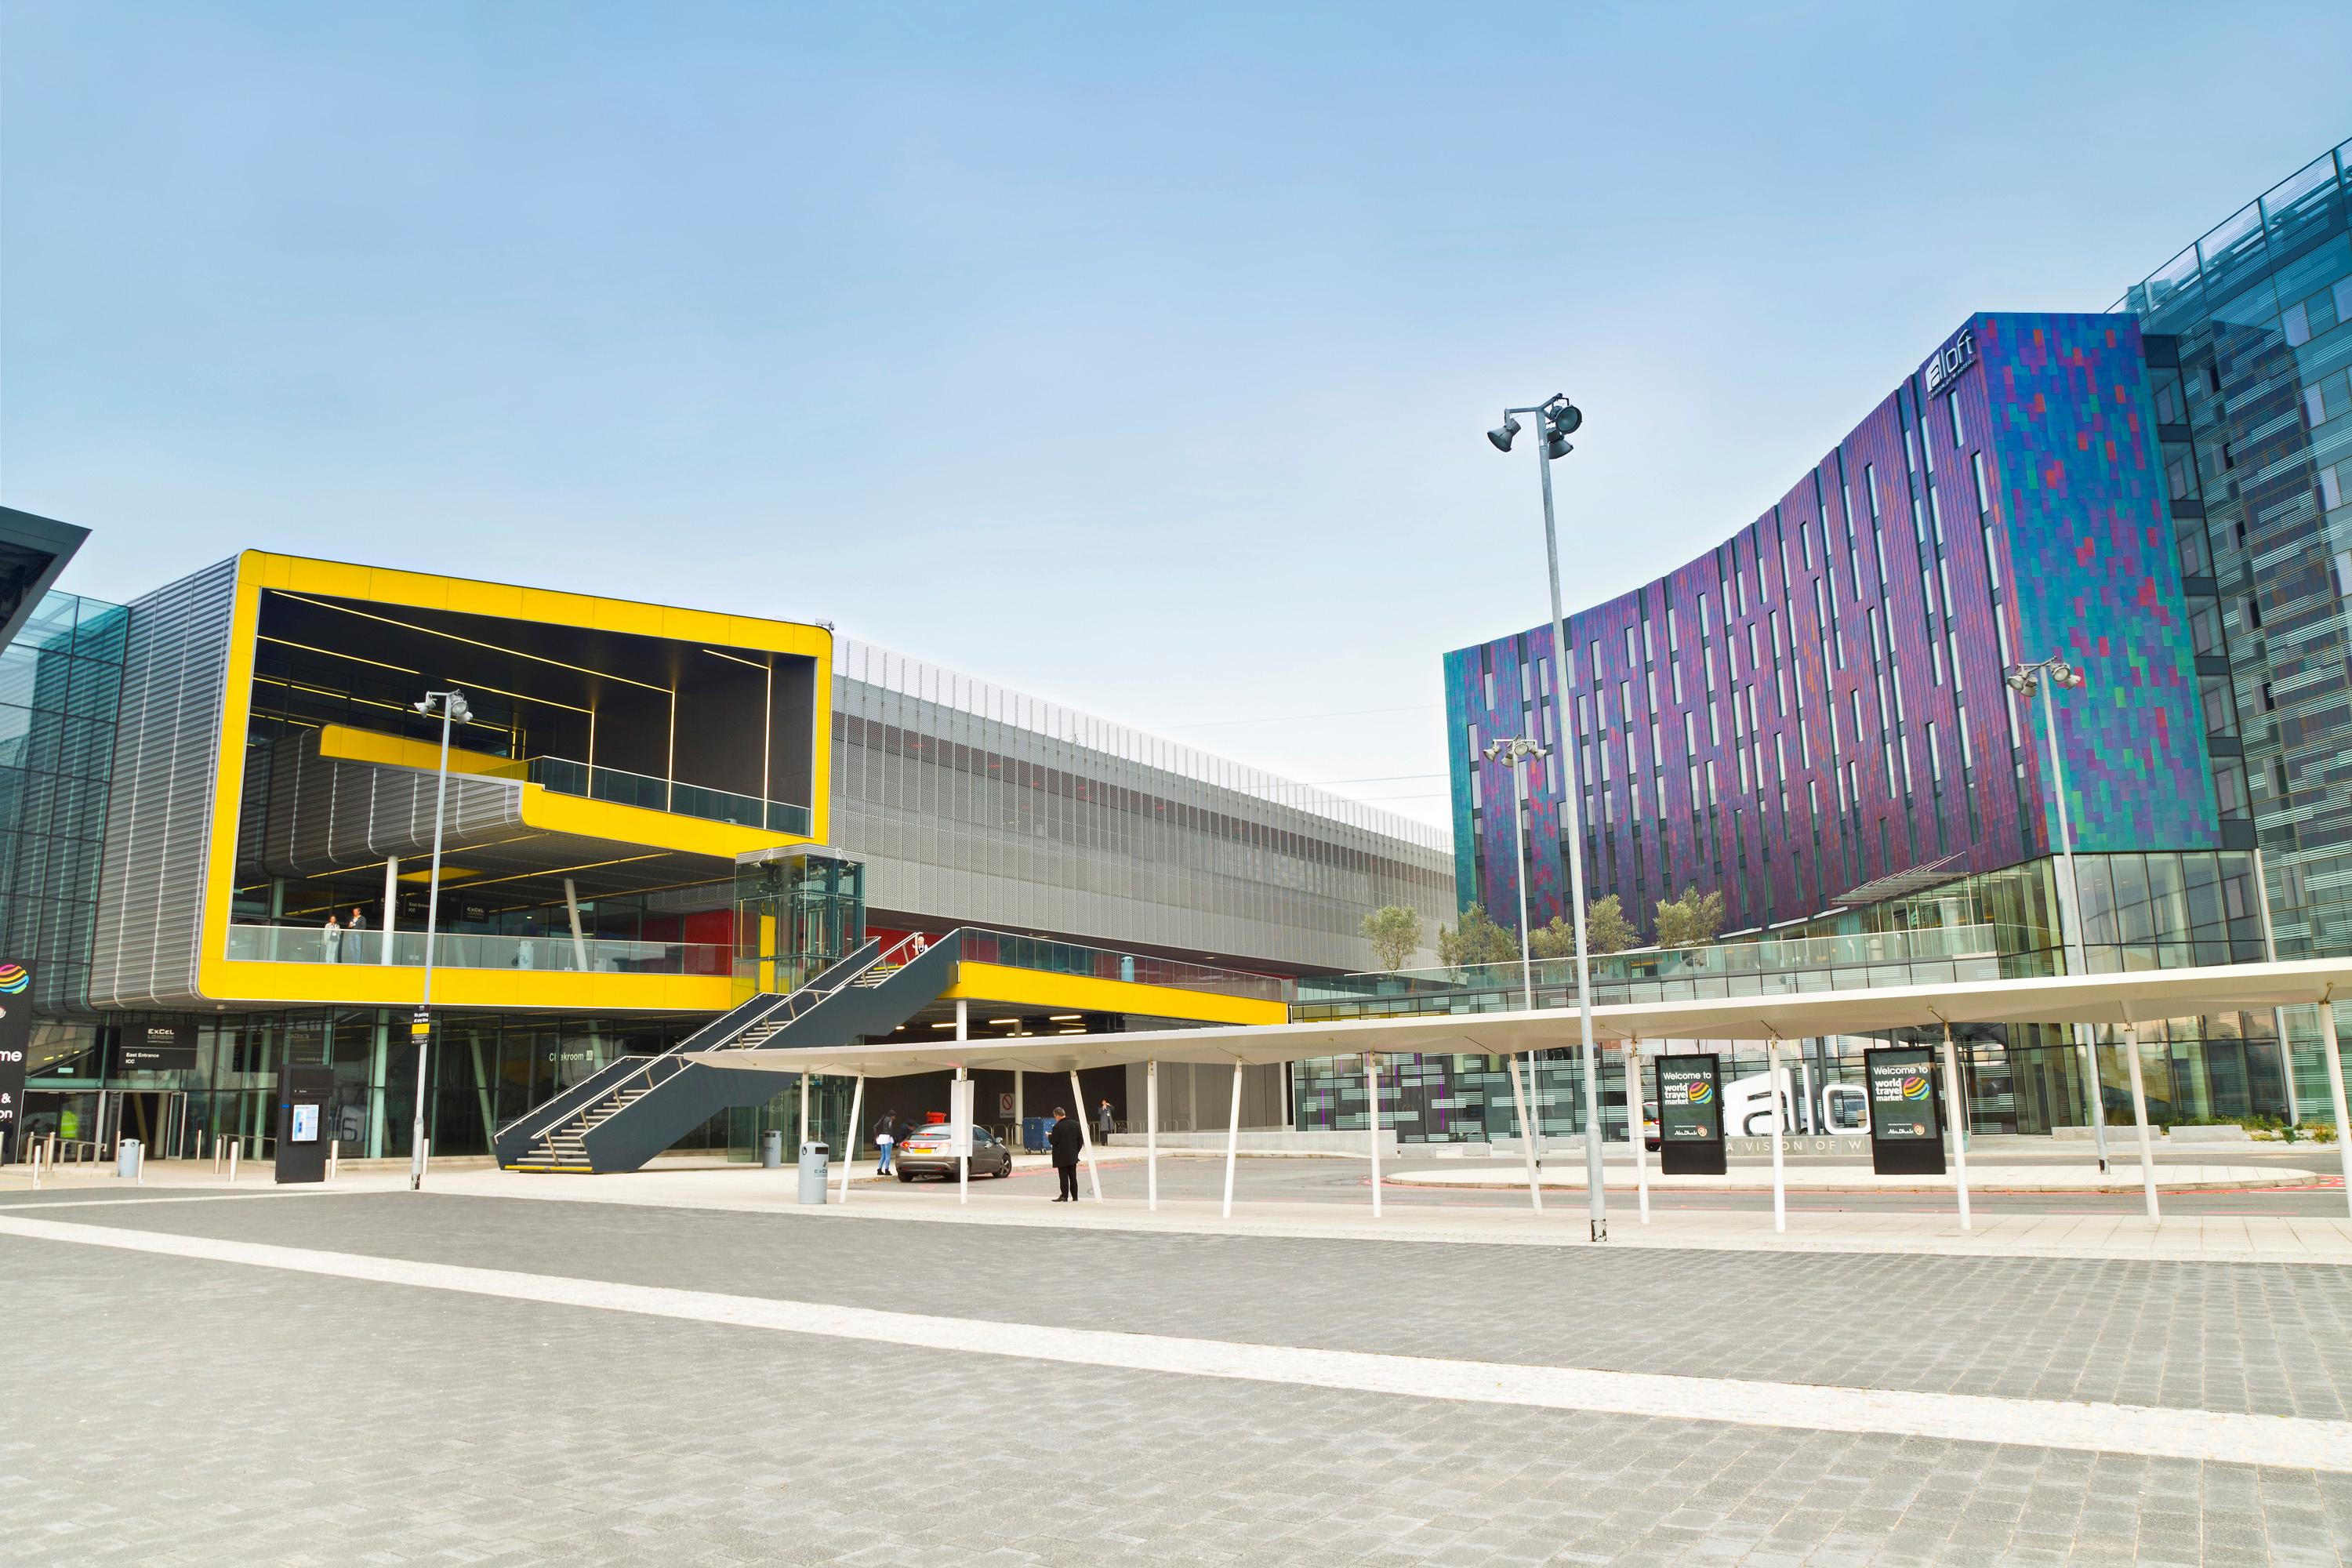 Every aspect of ExCeL London impresses